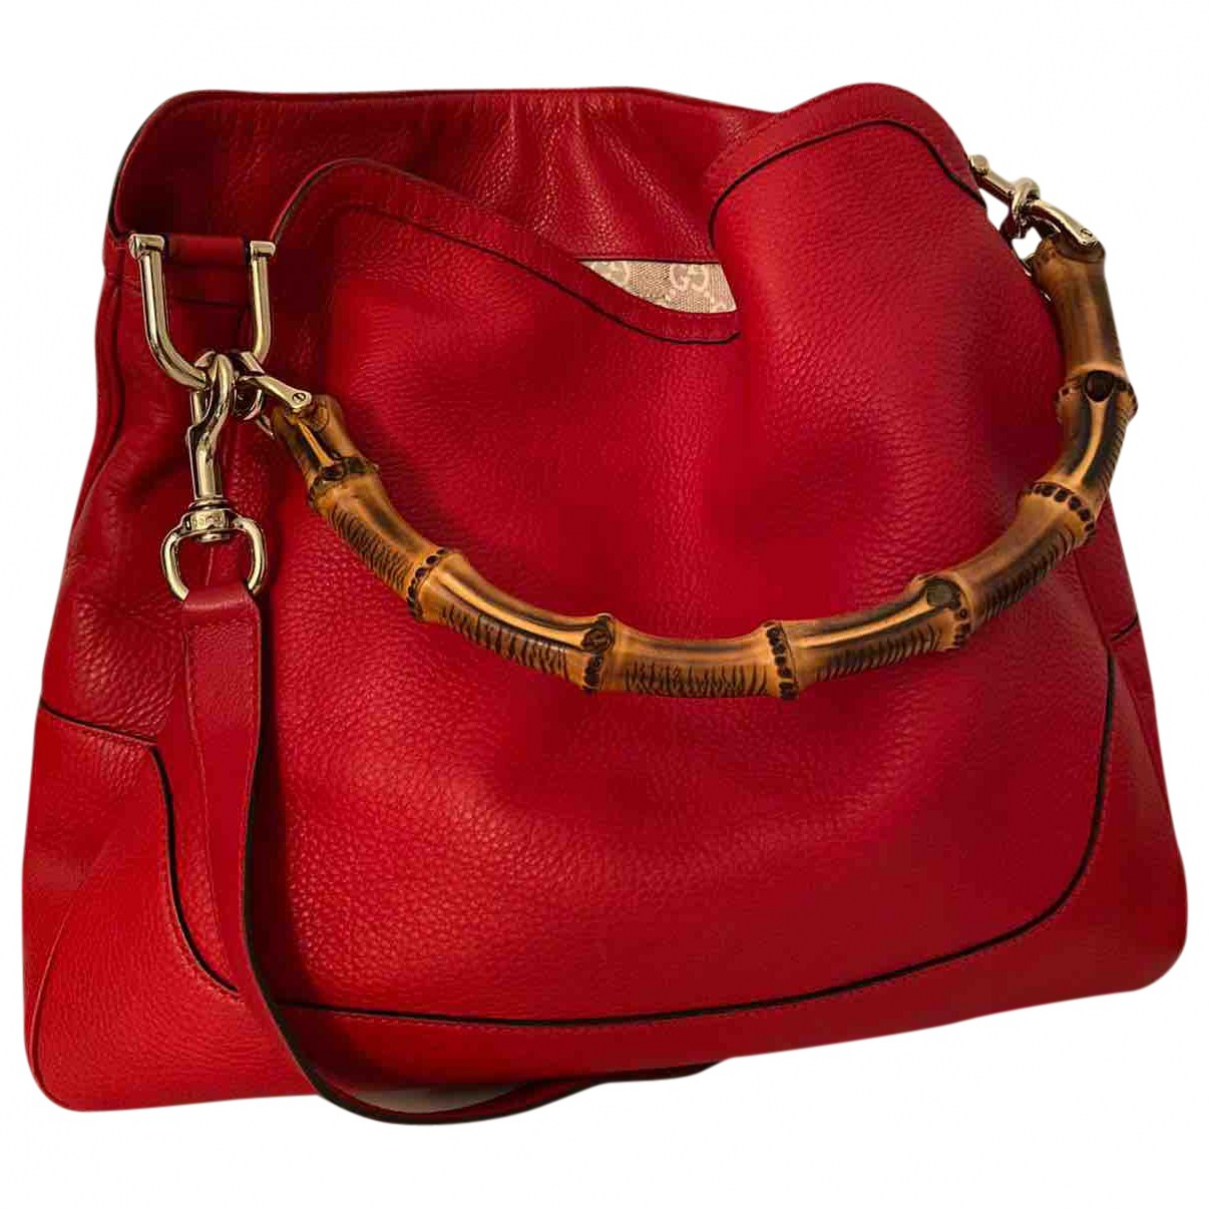 Gucci Bamboo Red Leather handbag for Women \N